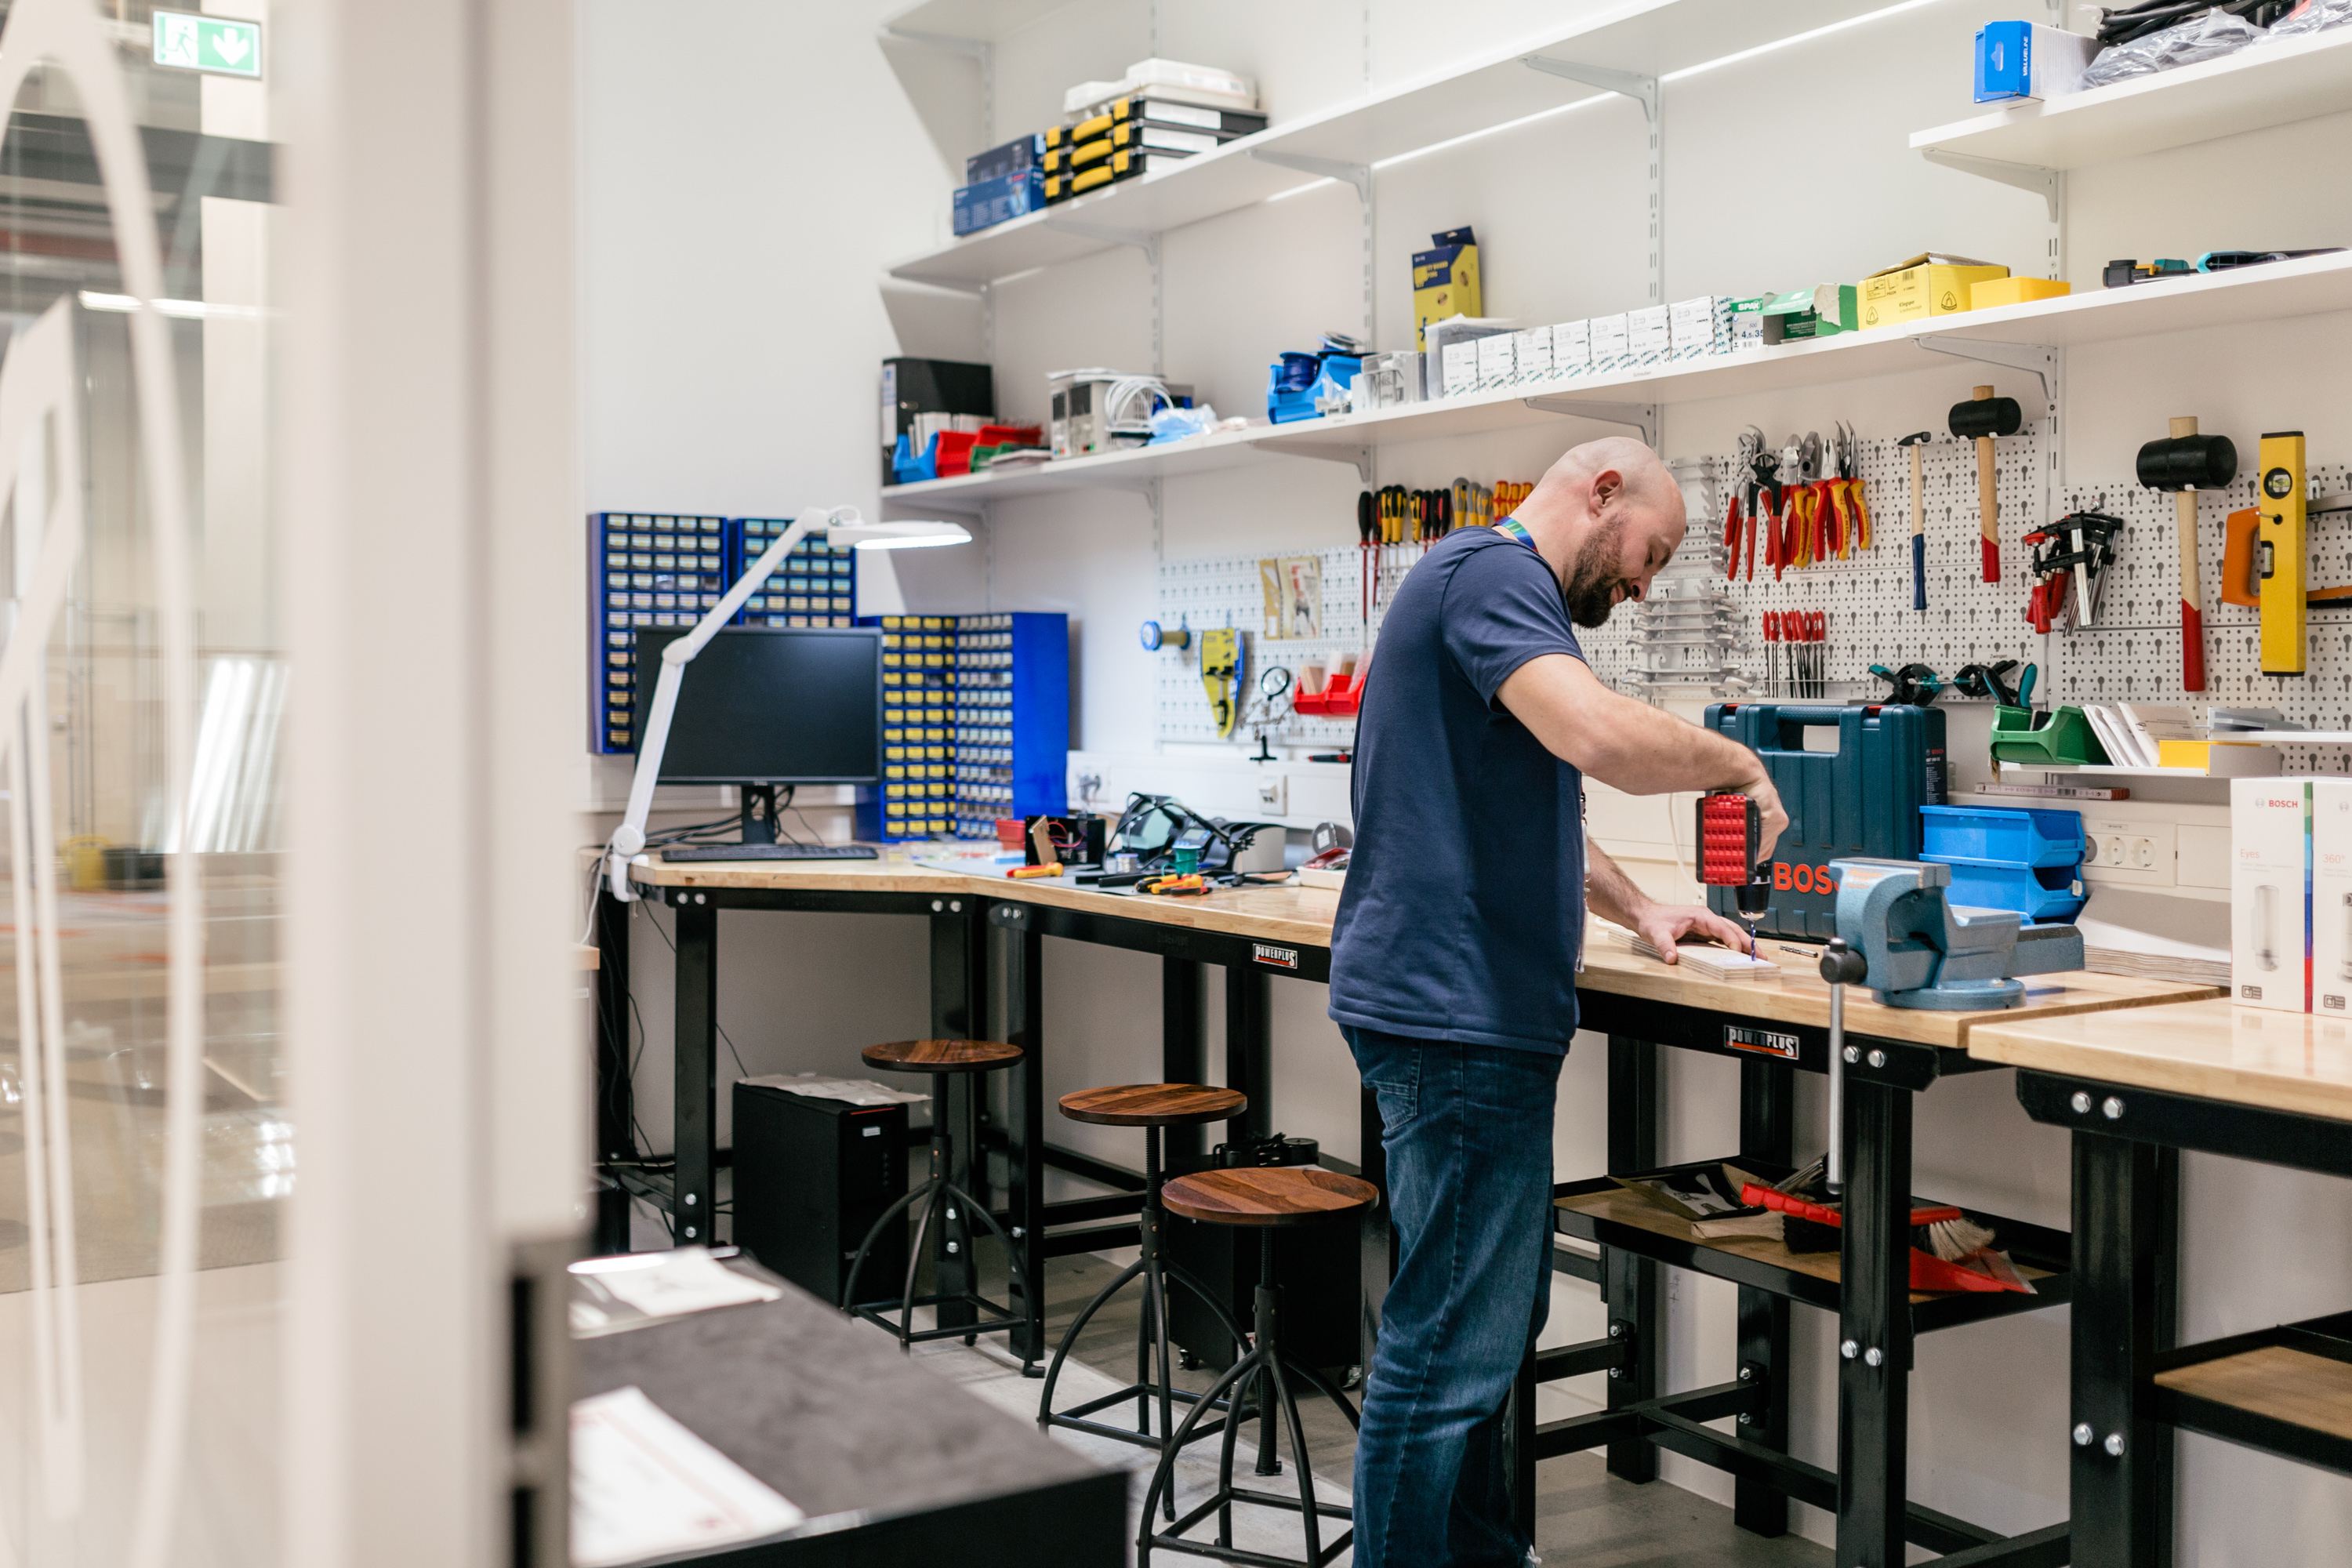 Tools on the Bosch IoT campus